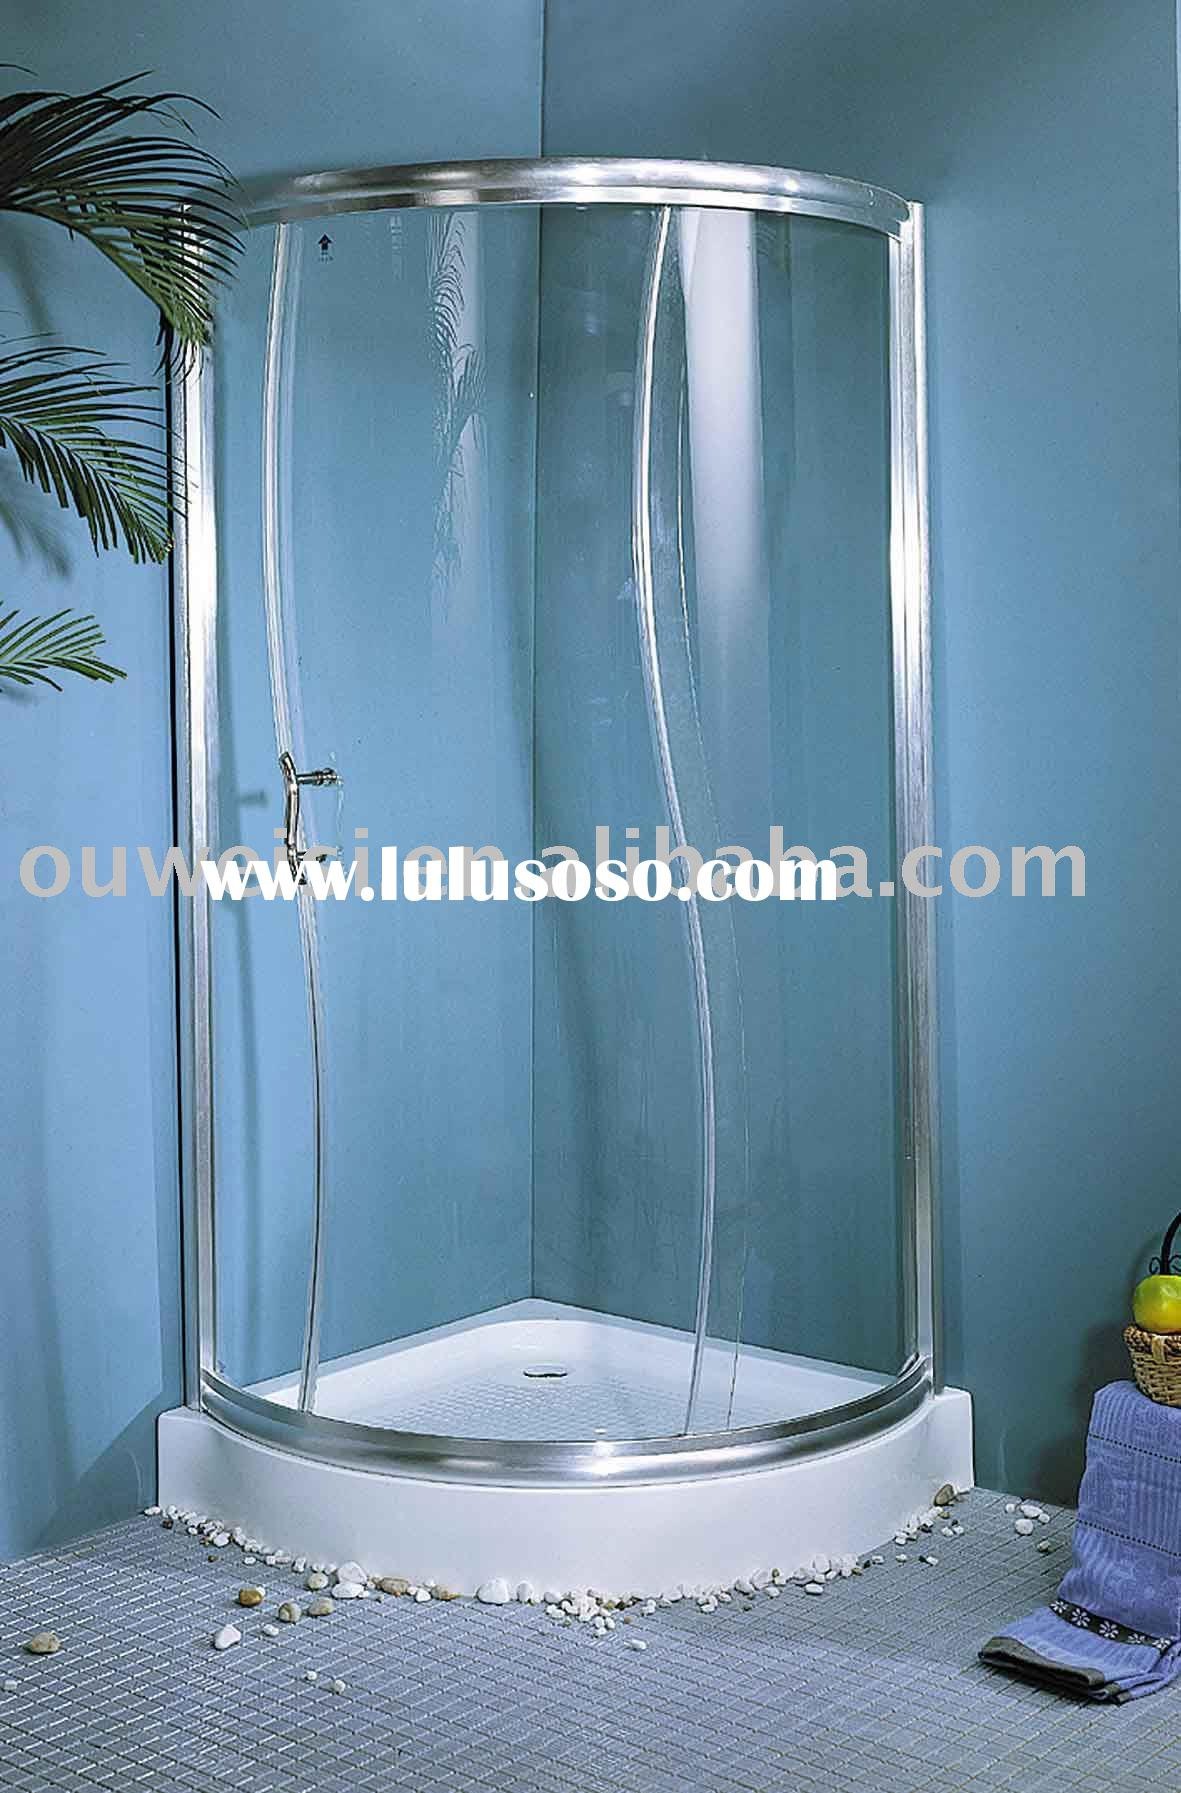 shower enclosure screen, shower enclosure screen Manufacturers in ...